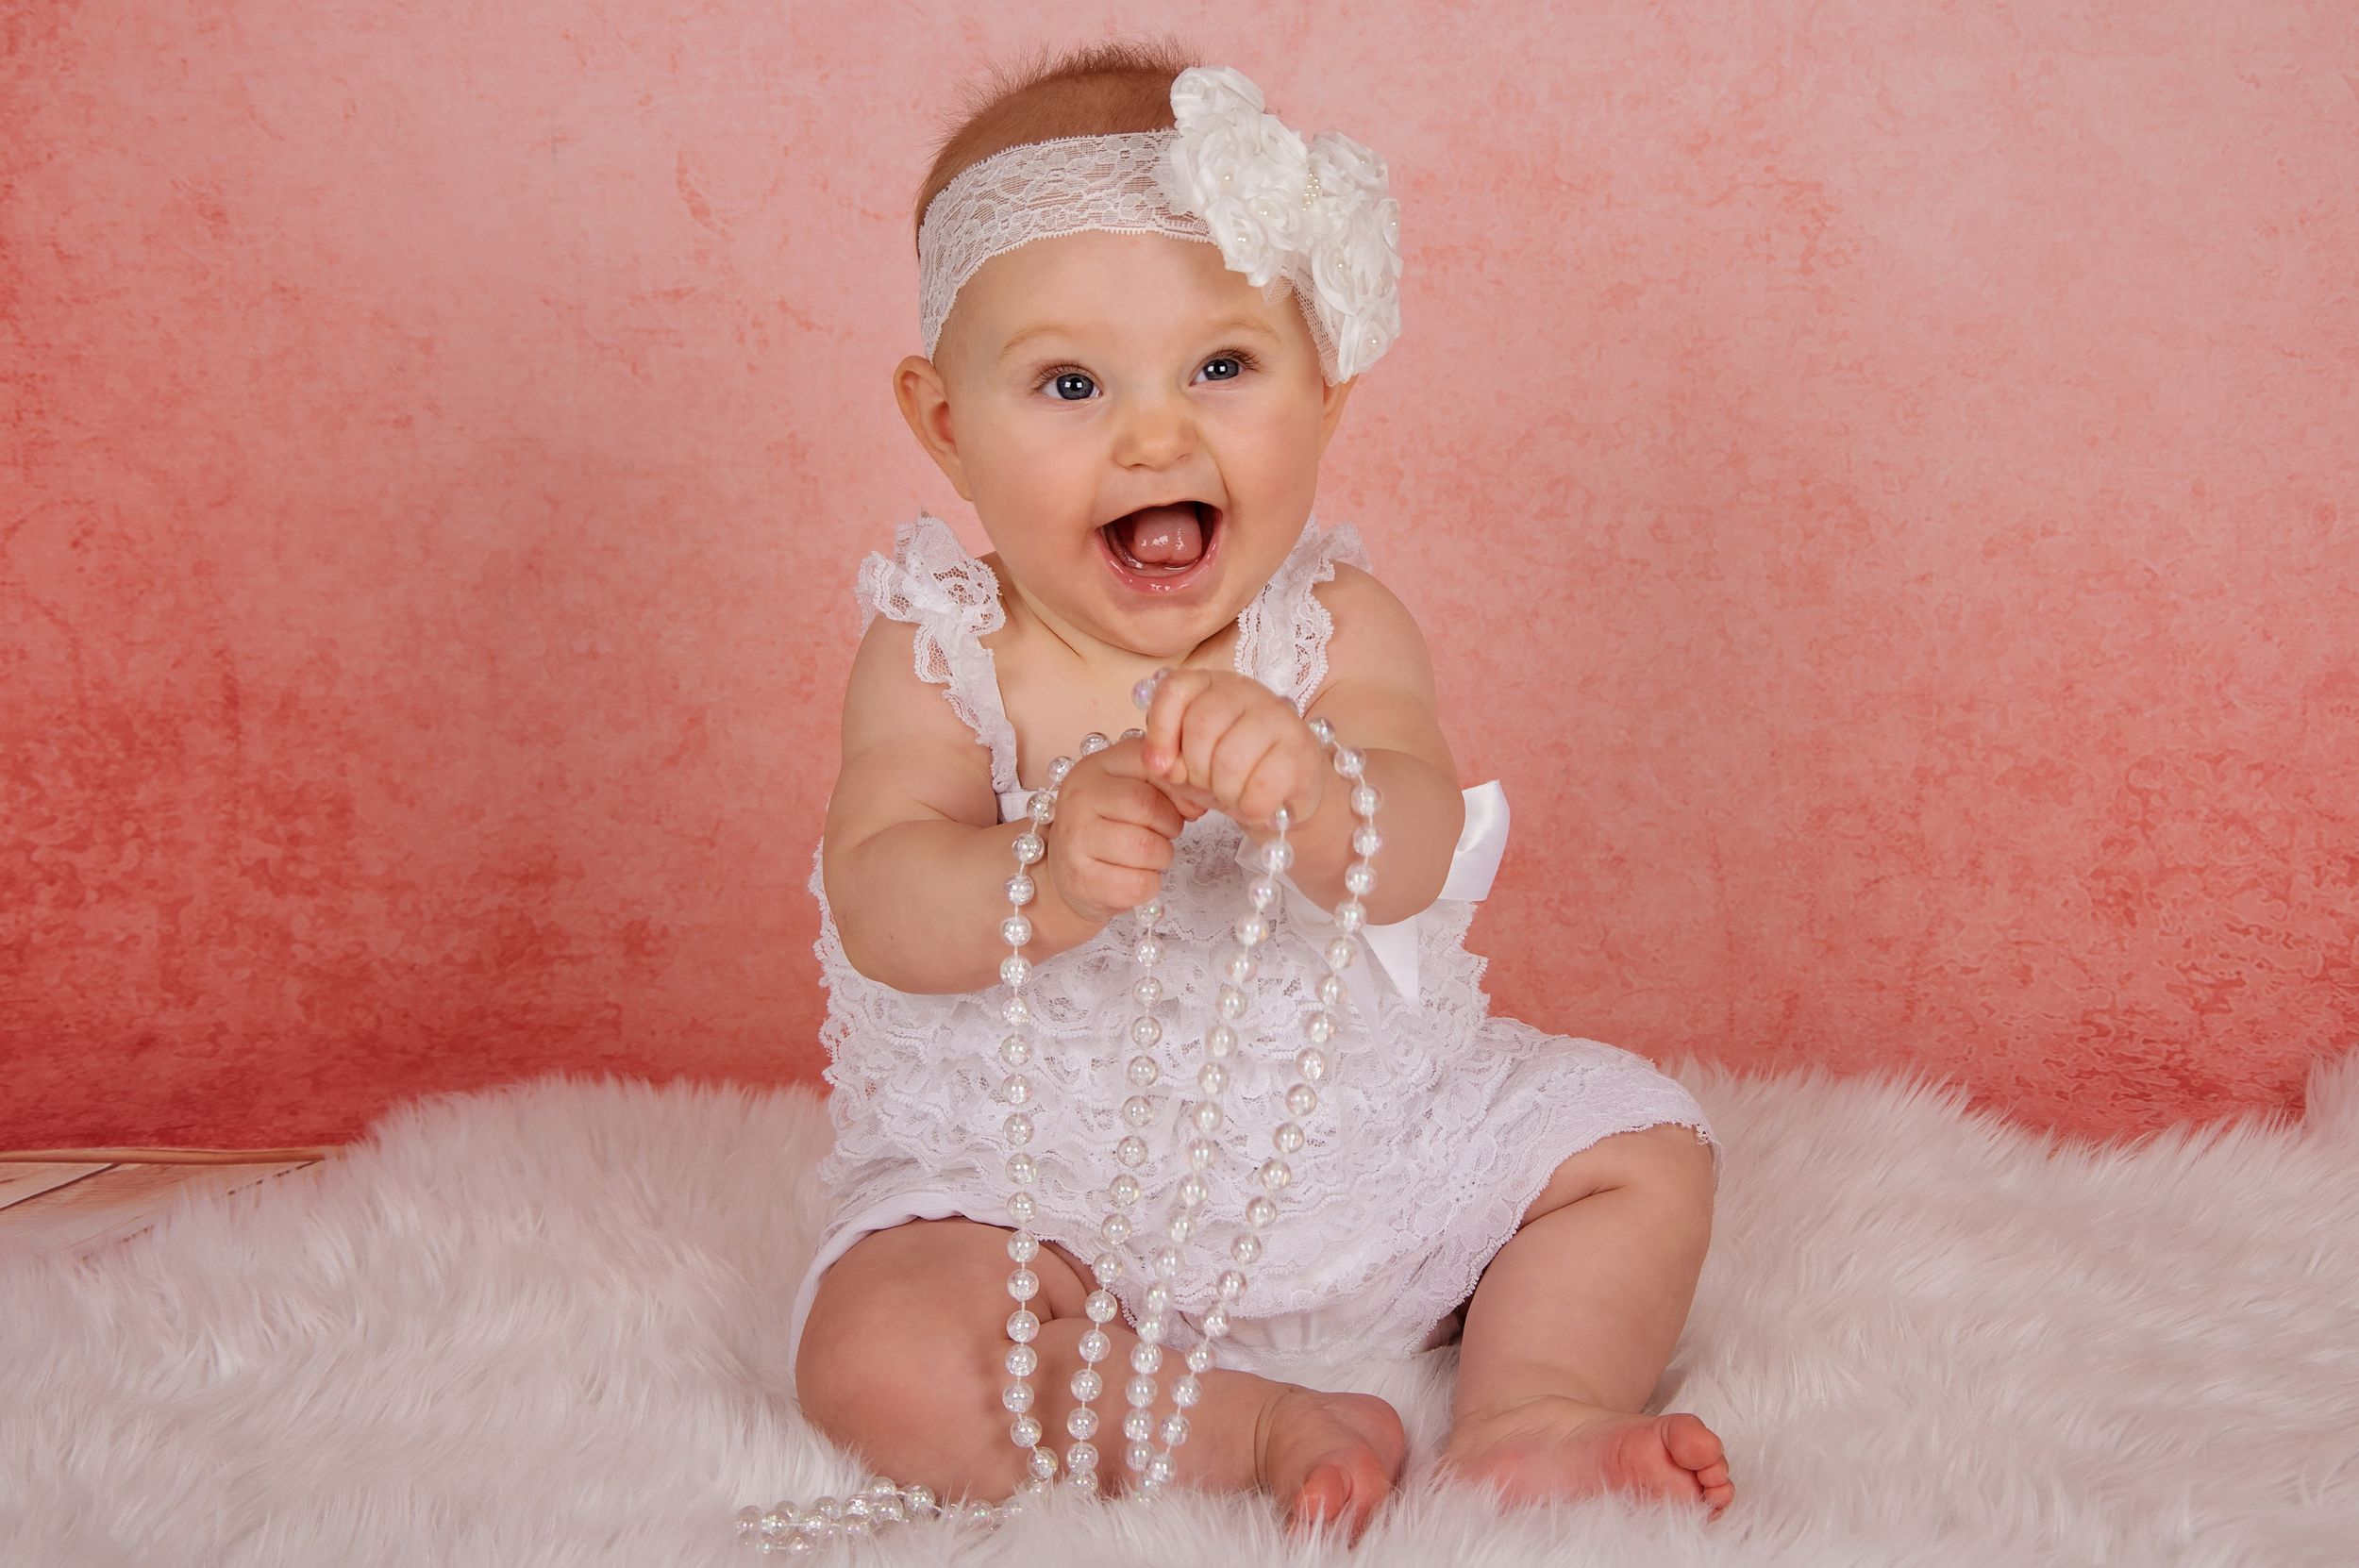 baby sitting up playing with pearls and laughing